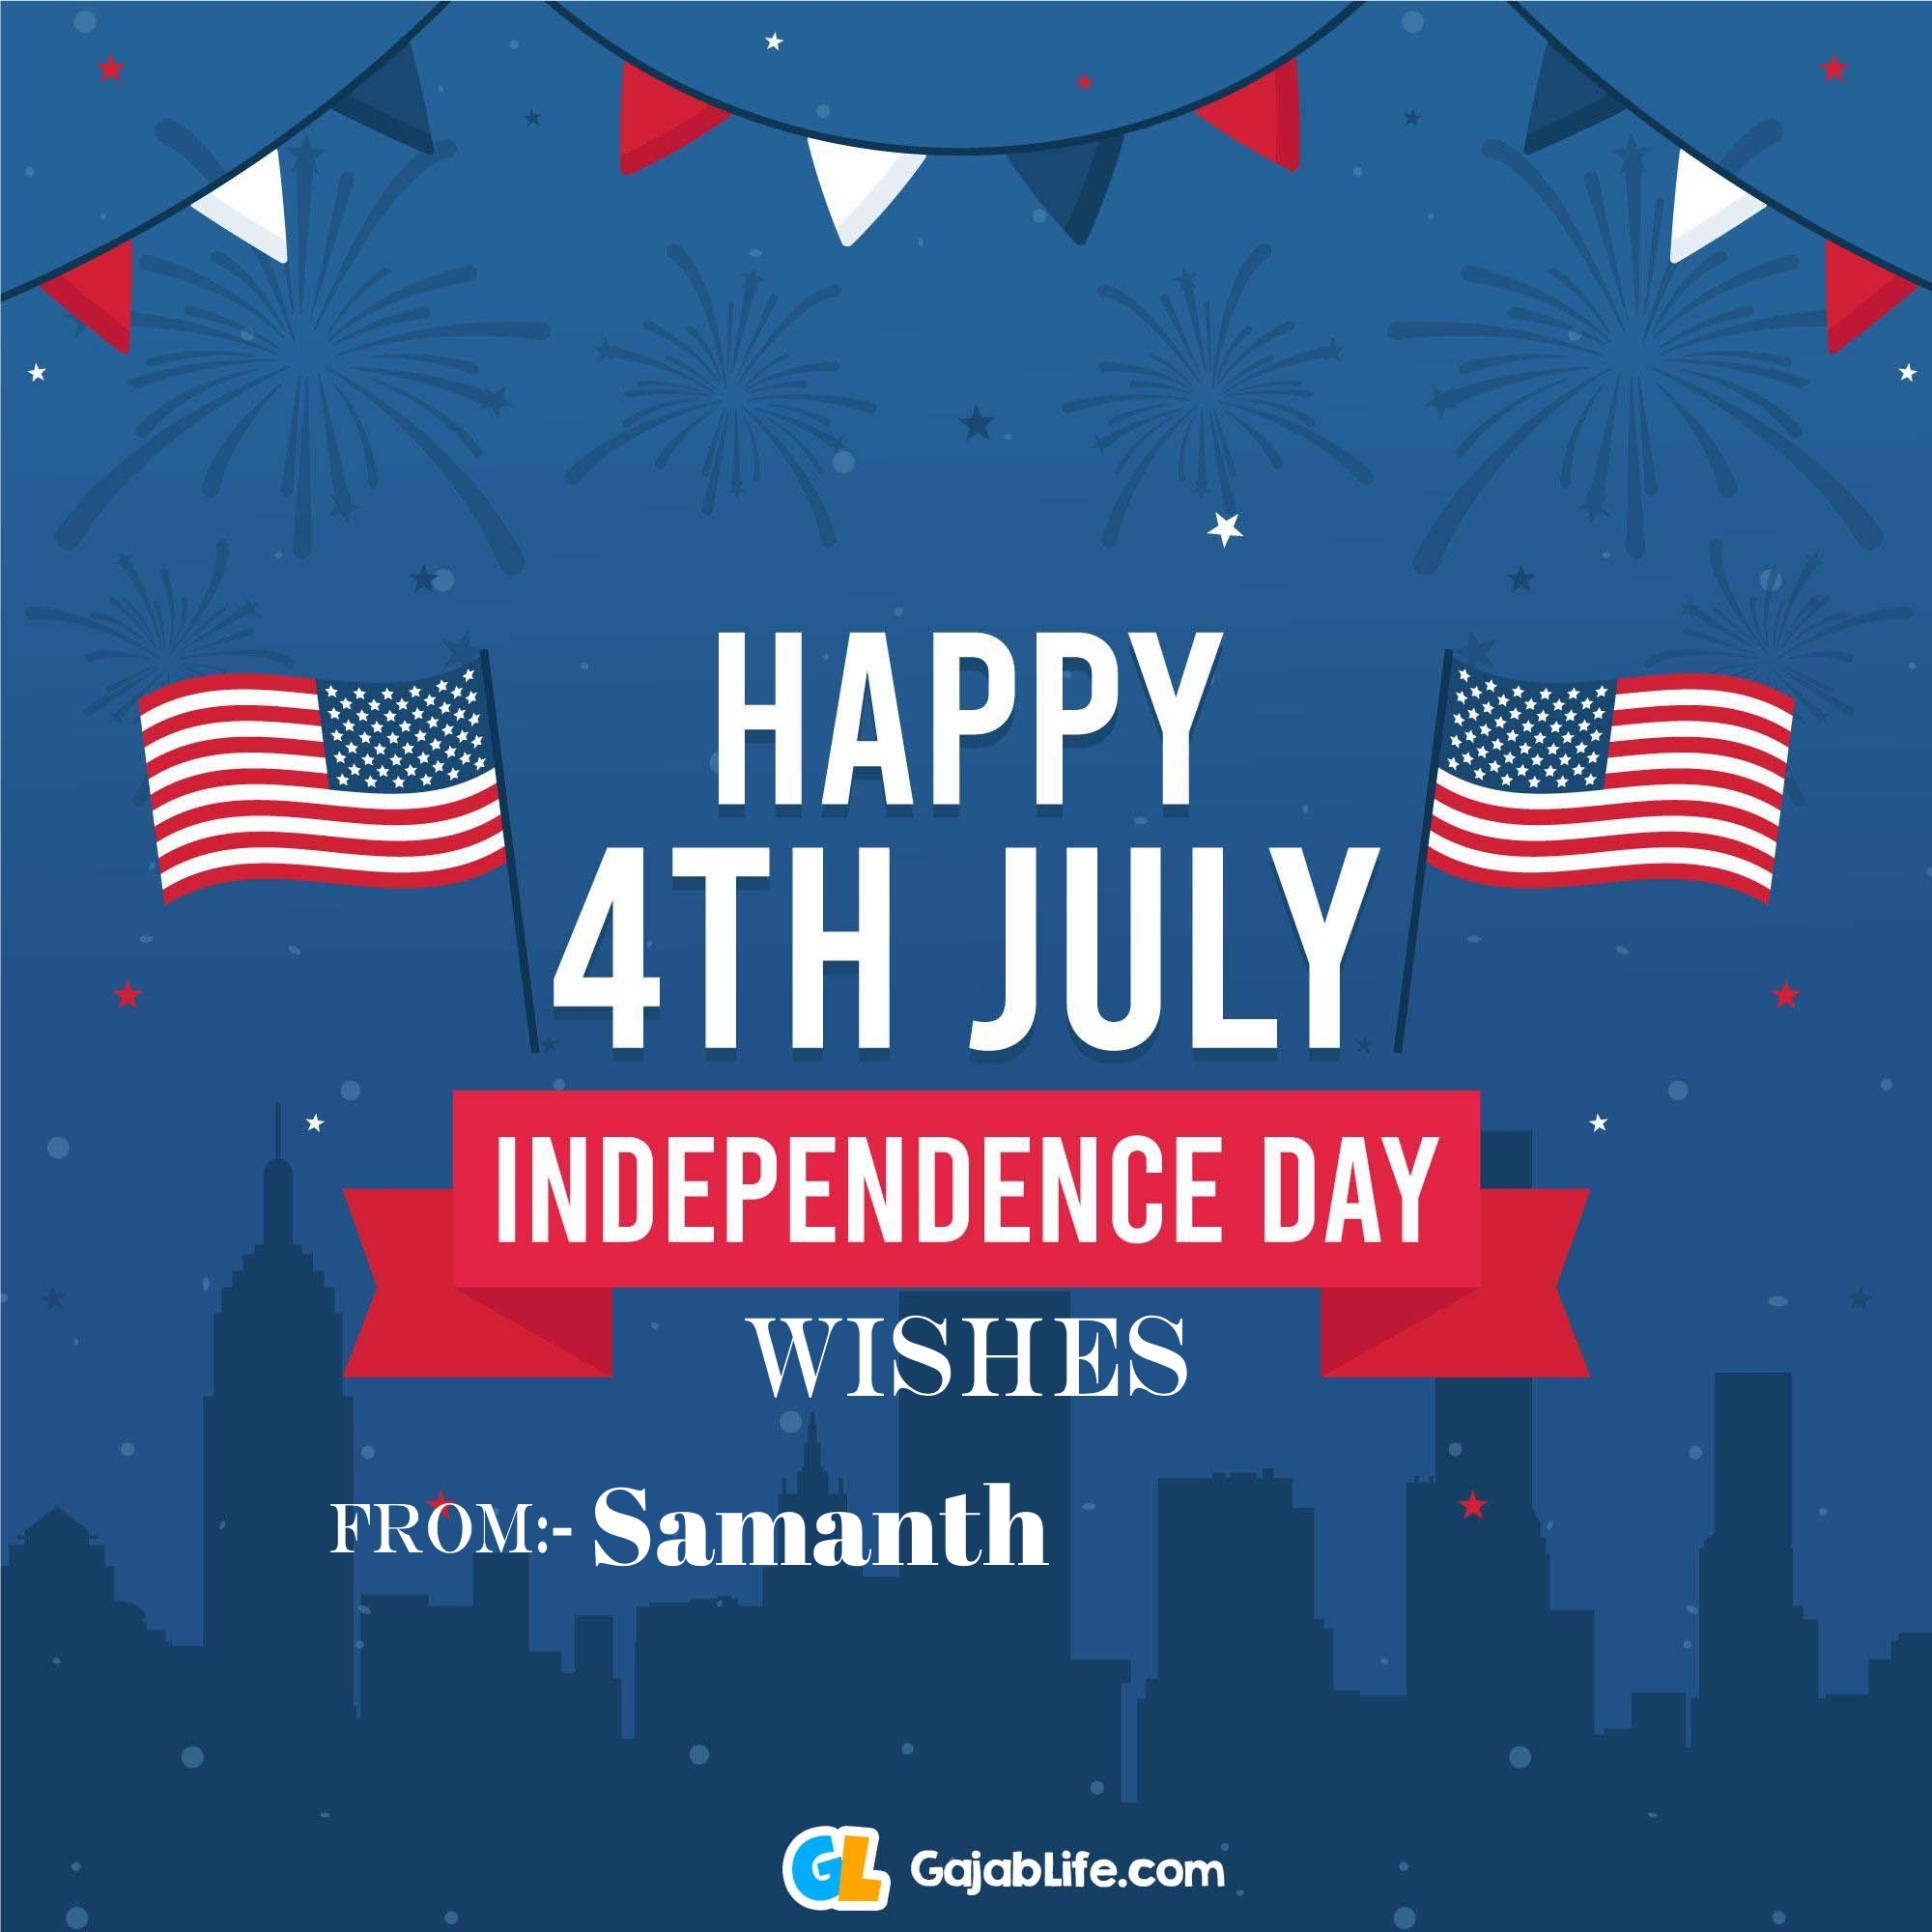 Samanth happy independence day united states of america images